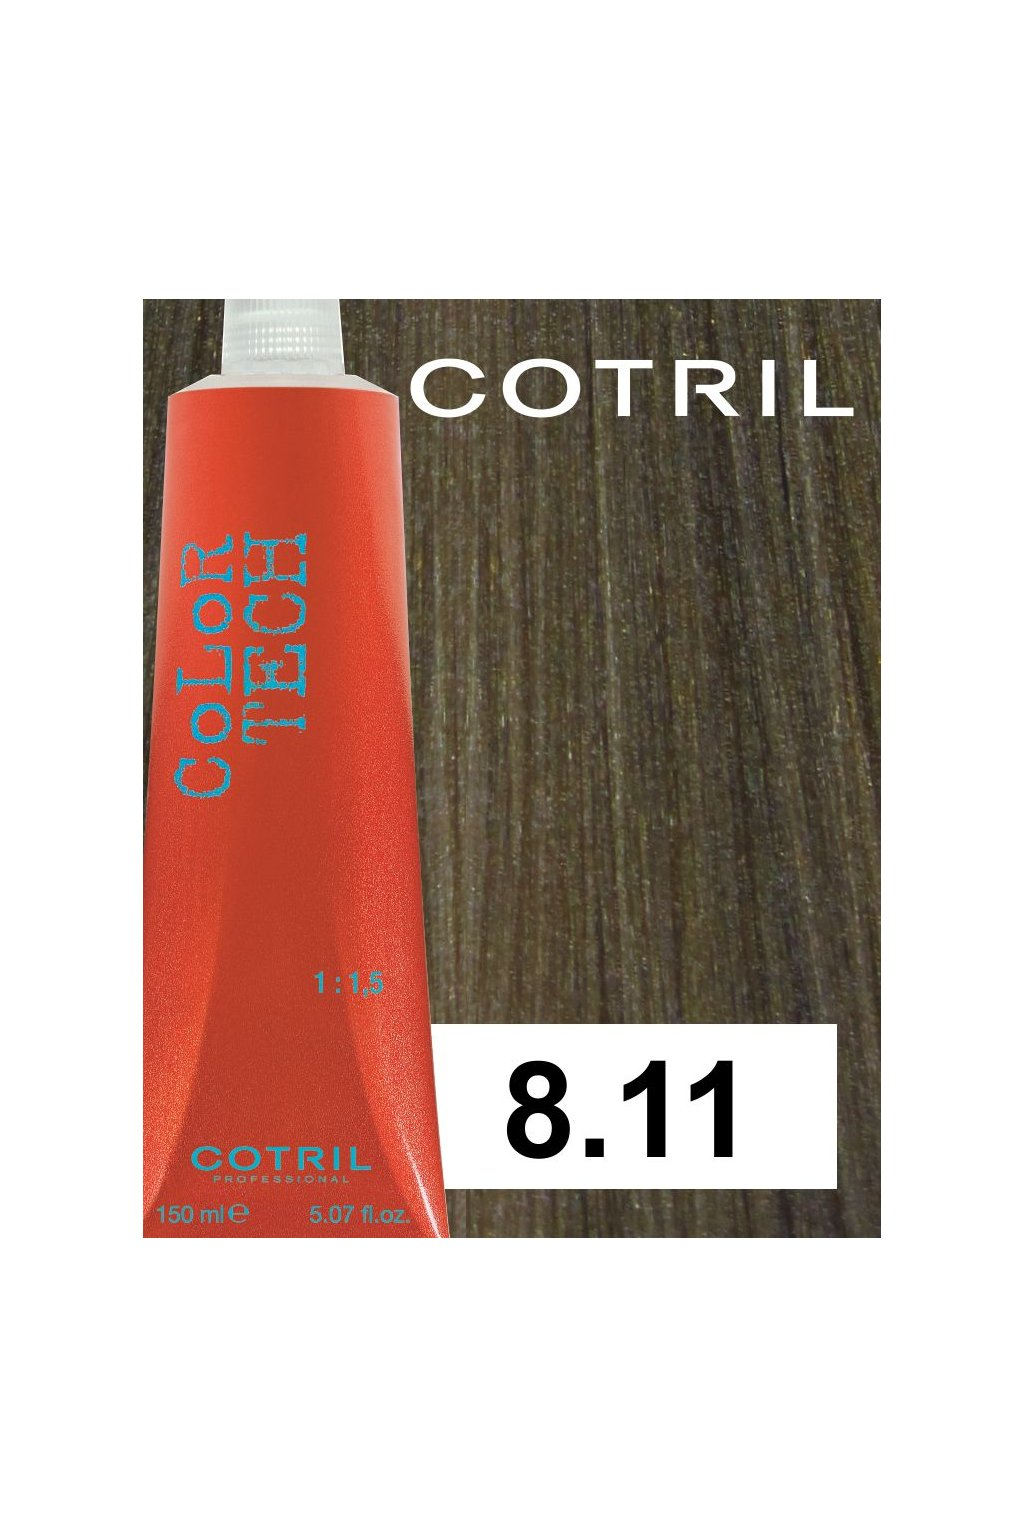 8 11 ct cotril